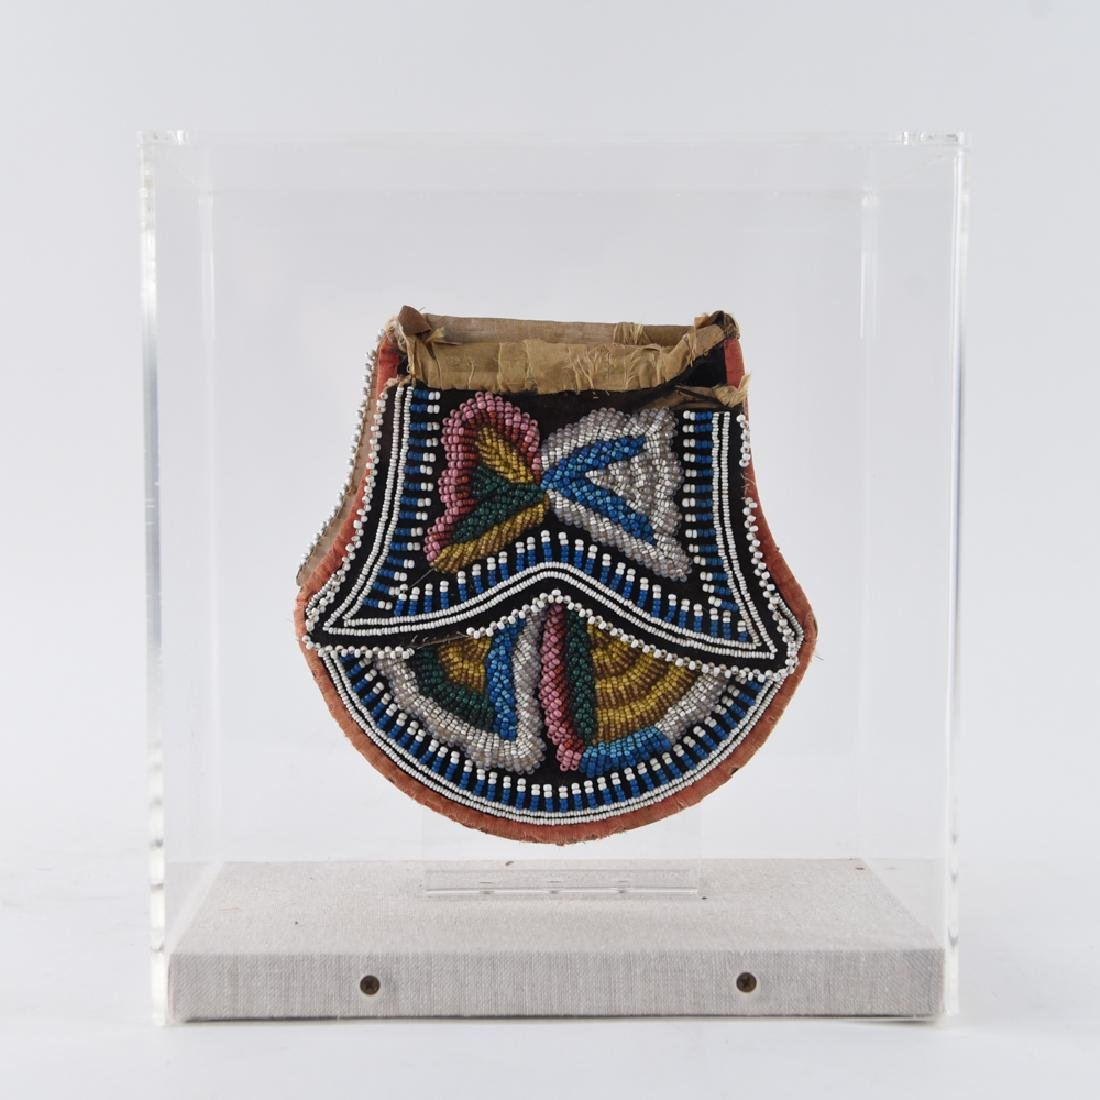 MI'KMAQ EARLY 20TH C. NATIVE AMERICAN BEADED BAG